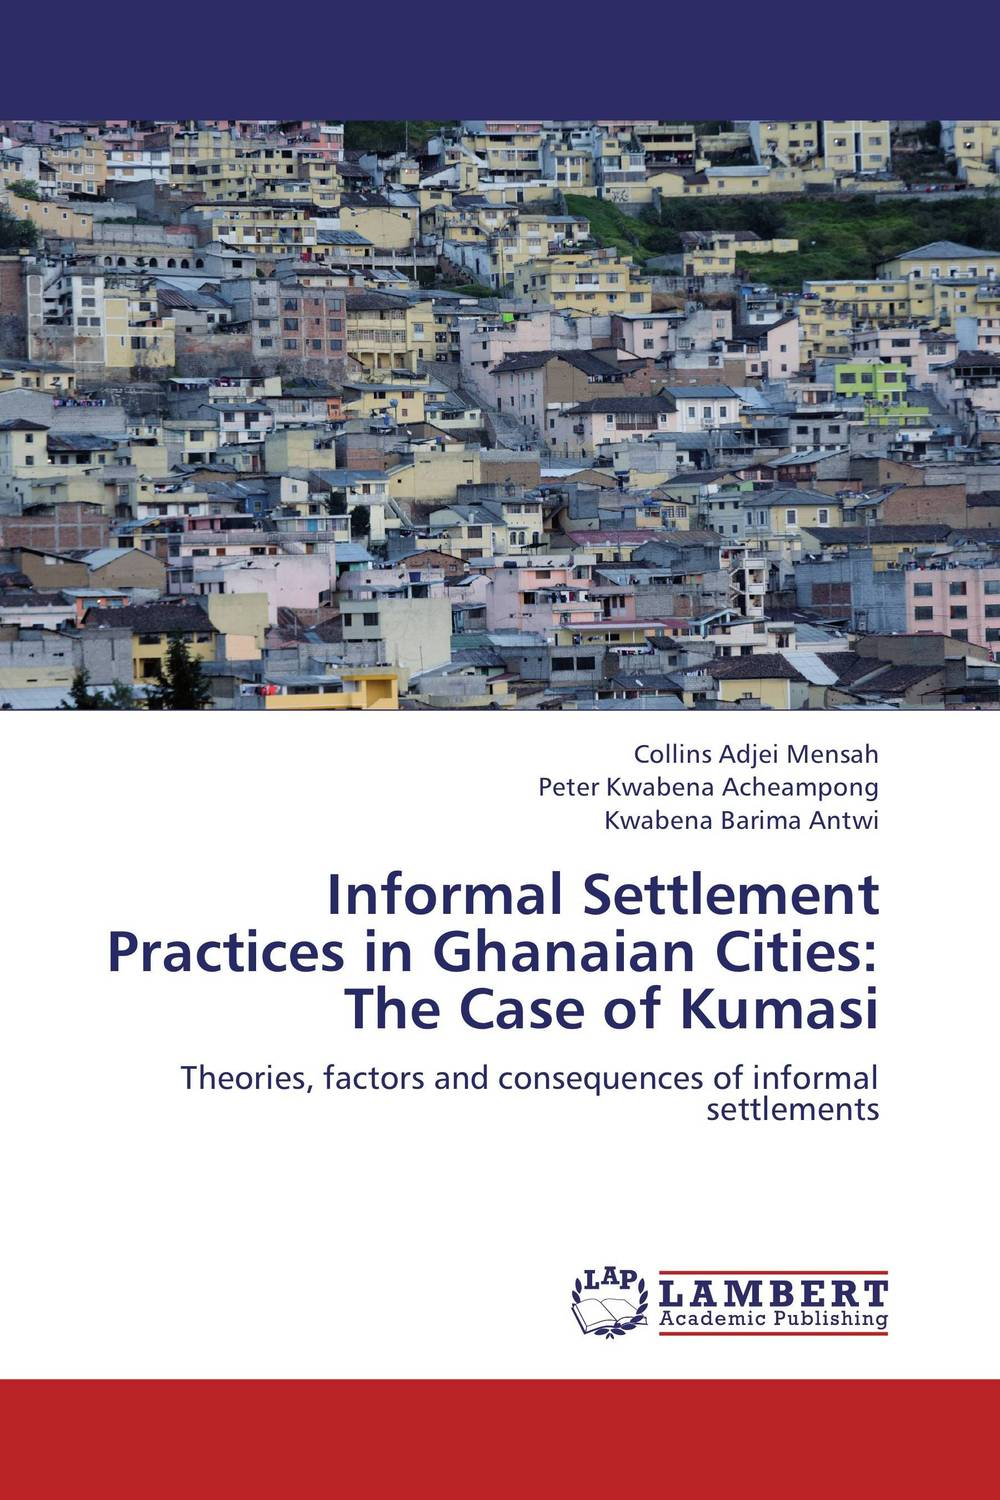 Informal Settlement Practices in Ghanaian Cities: The Case of Kumasi urban wetland ecology and floods in kumasi ghana